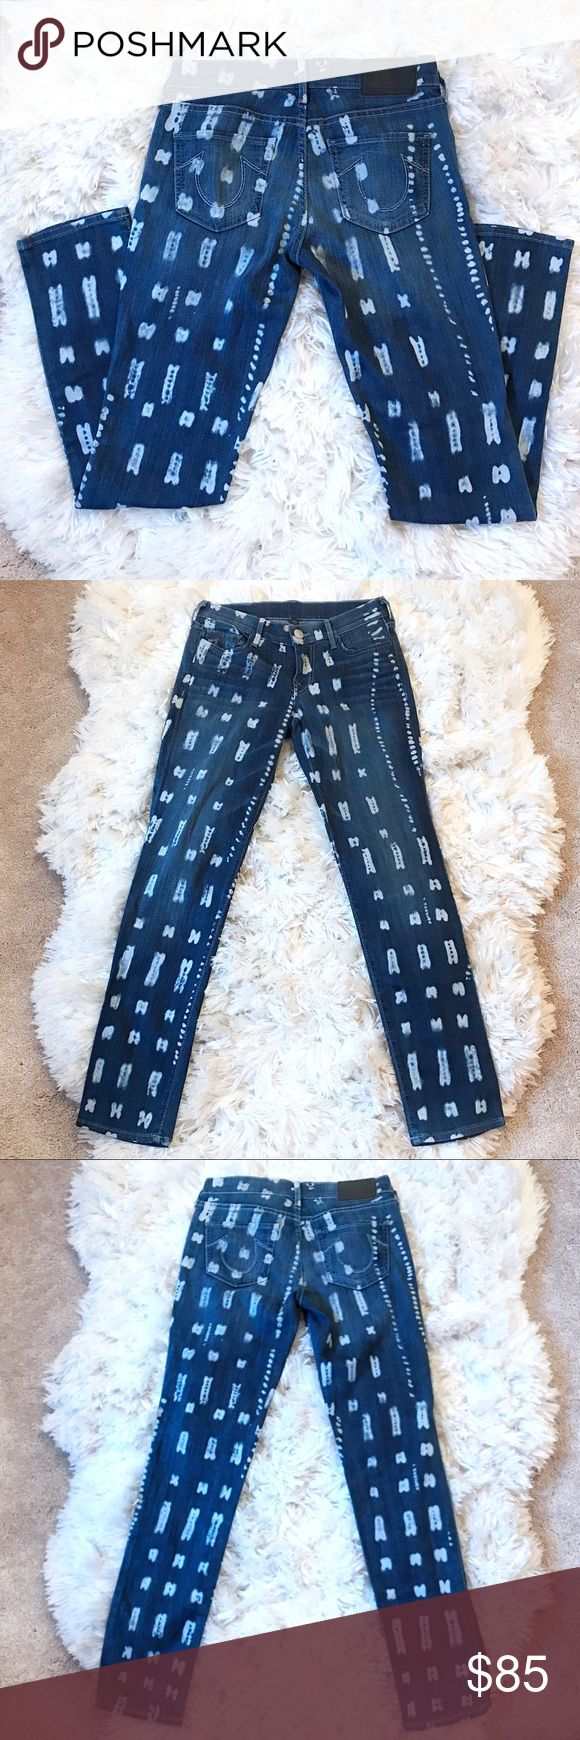 """True Religion Victoria Skinny Jean in Malinke True Religion Victoria Mid Rise Skinny Ankle Malinke Wash Jeans 26. Excellent condition  Hand Measurements:  Waist: 27""""  Inseam: 29""""  Rise: 8""""  Hips: 34""""  Leg Opening: 6"""" True Religion Jeans Skinny"""